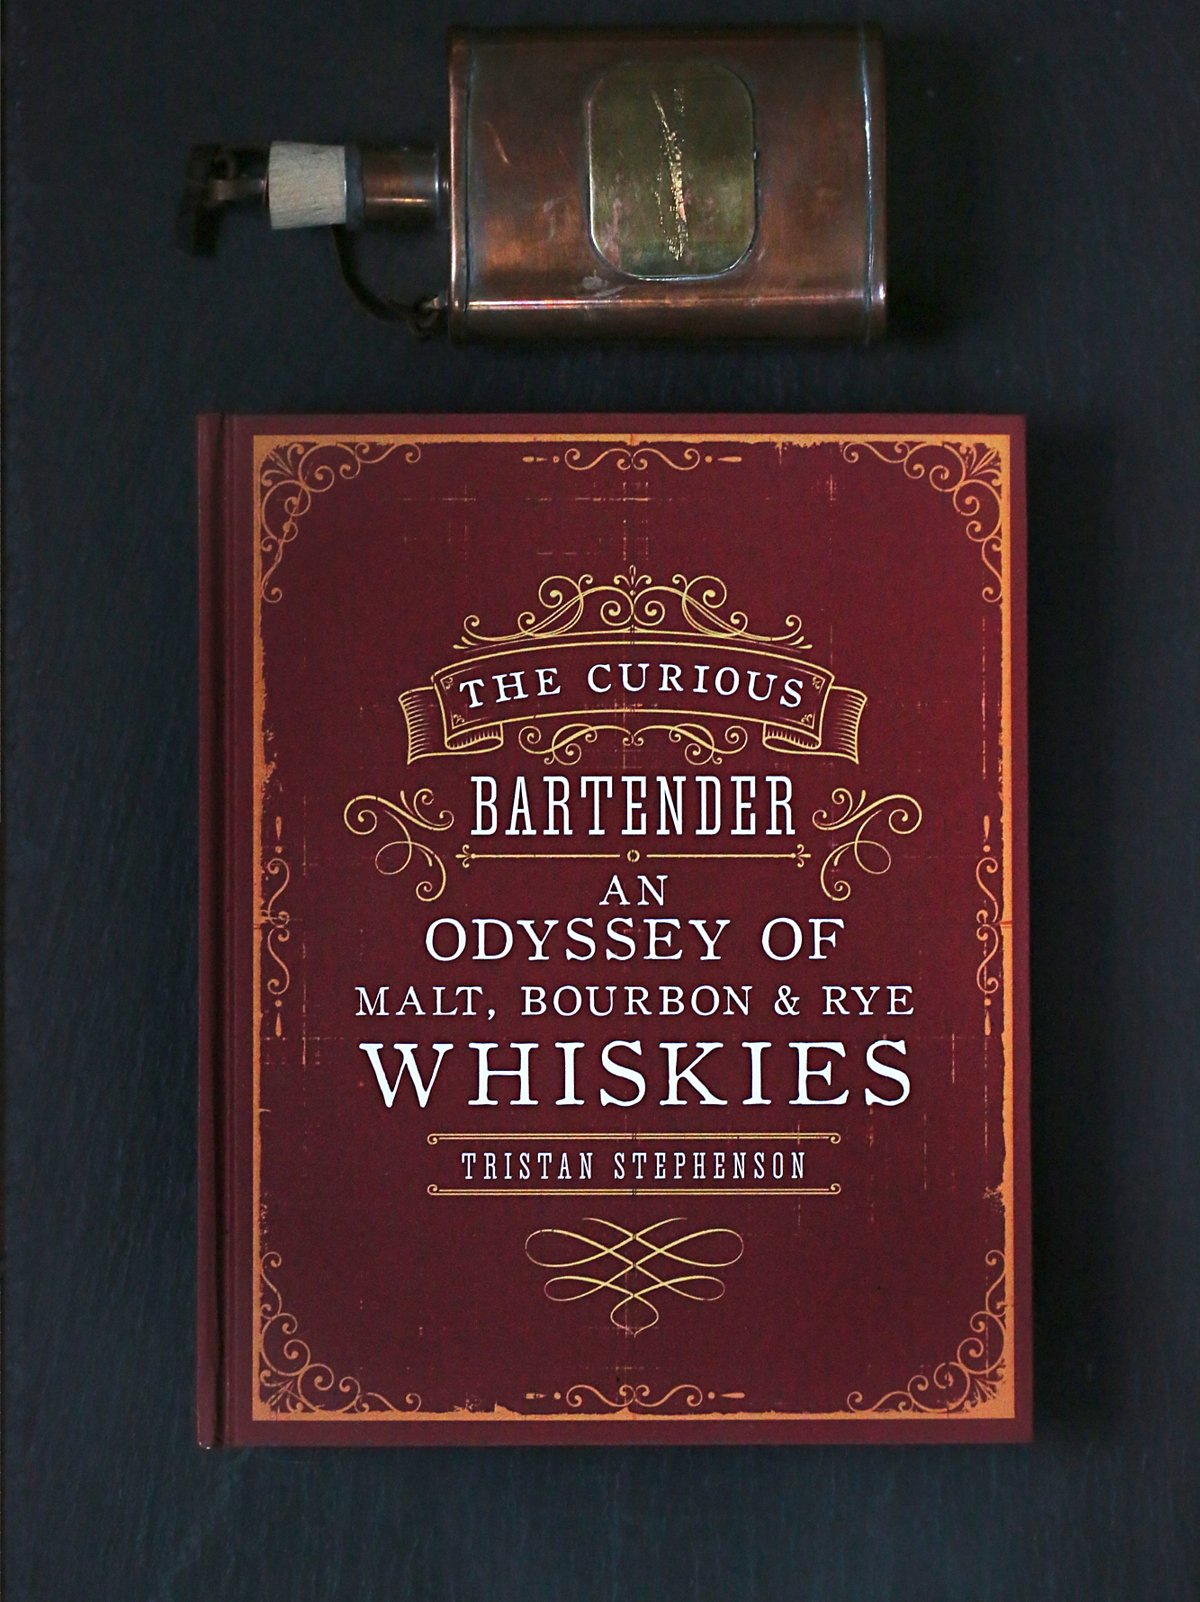 The Curious Bartender - Whiskies